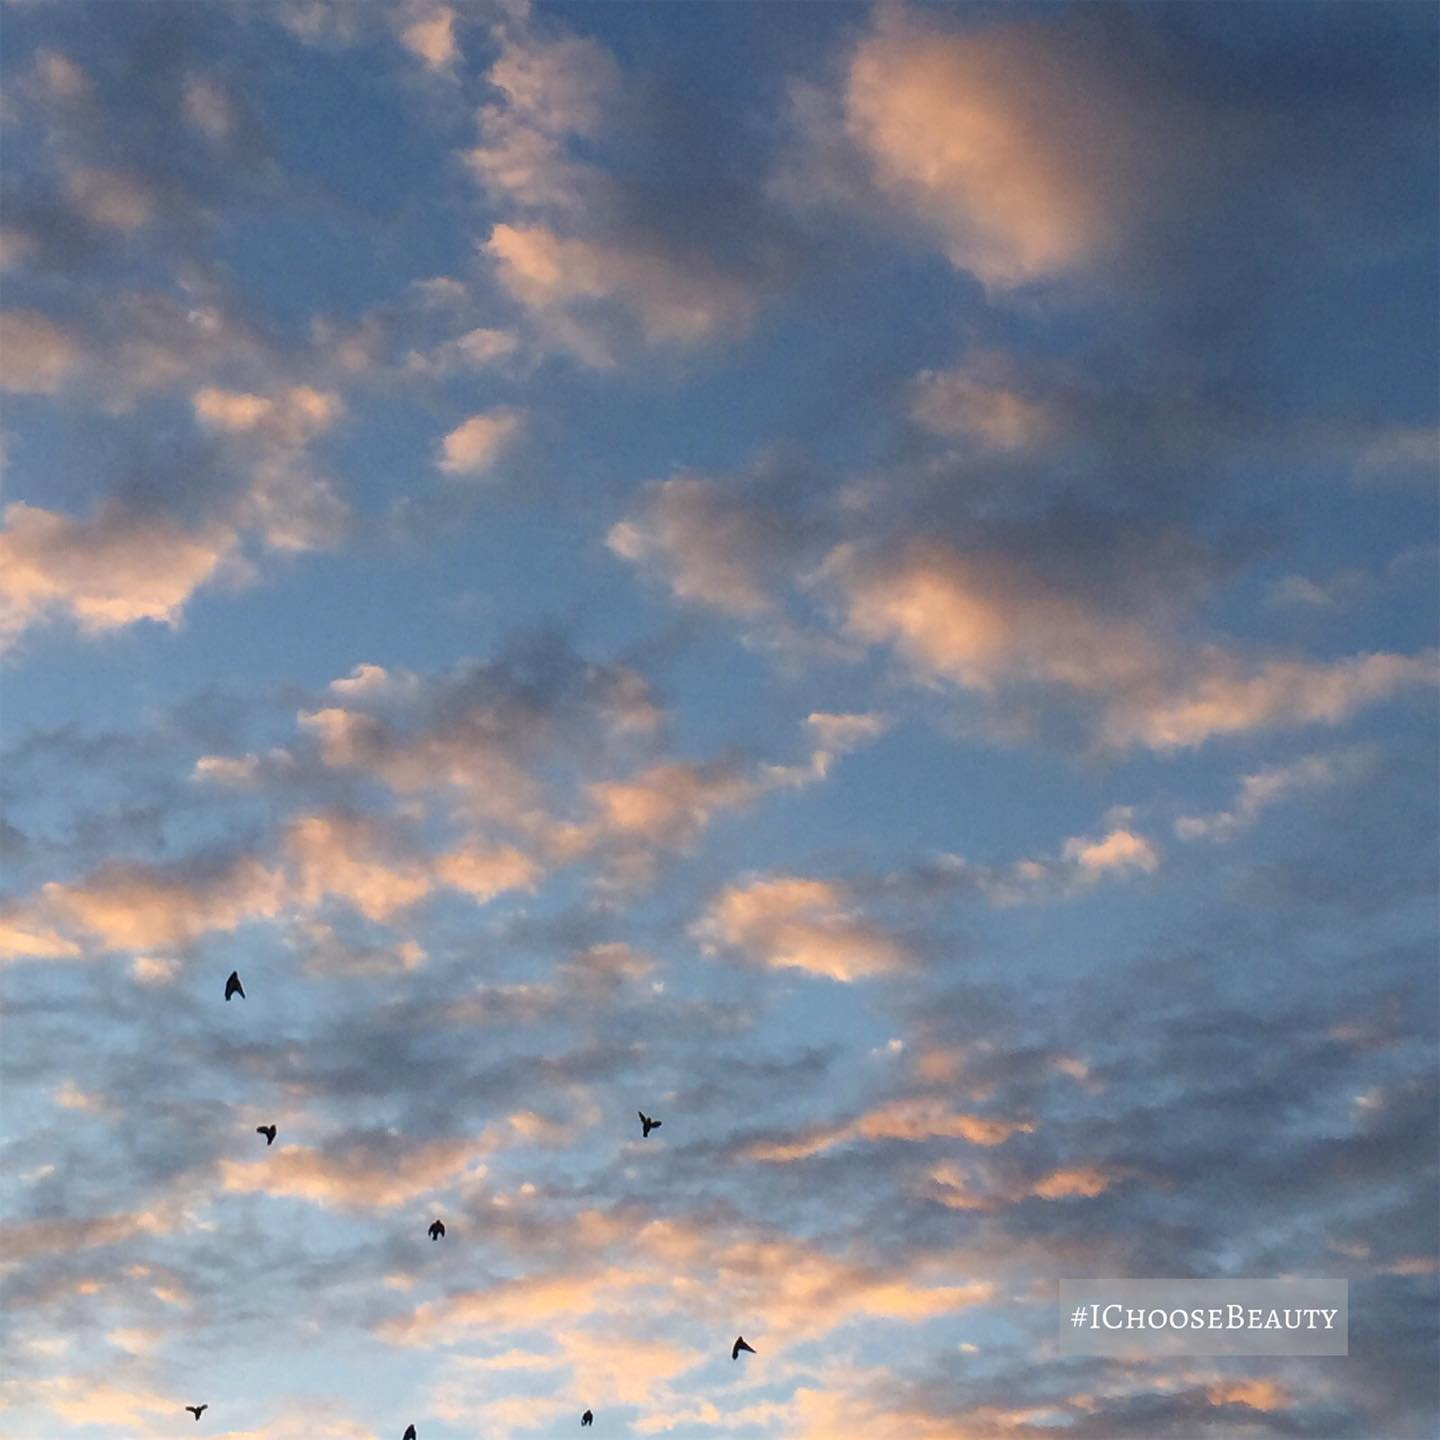 Evening clouds... with some birds I didn't know I captured, but I'm so glad I did! #ichoosebeauty Day 2731